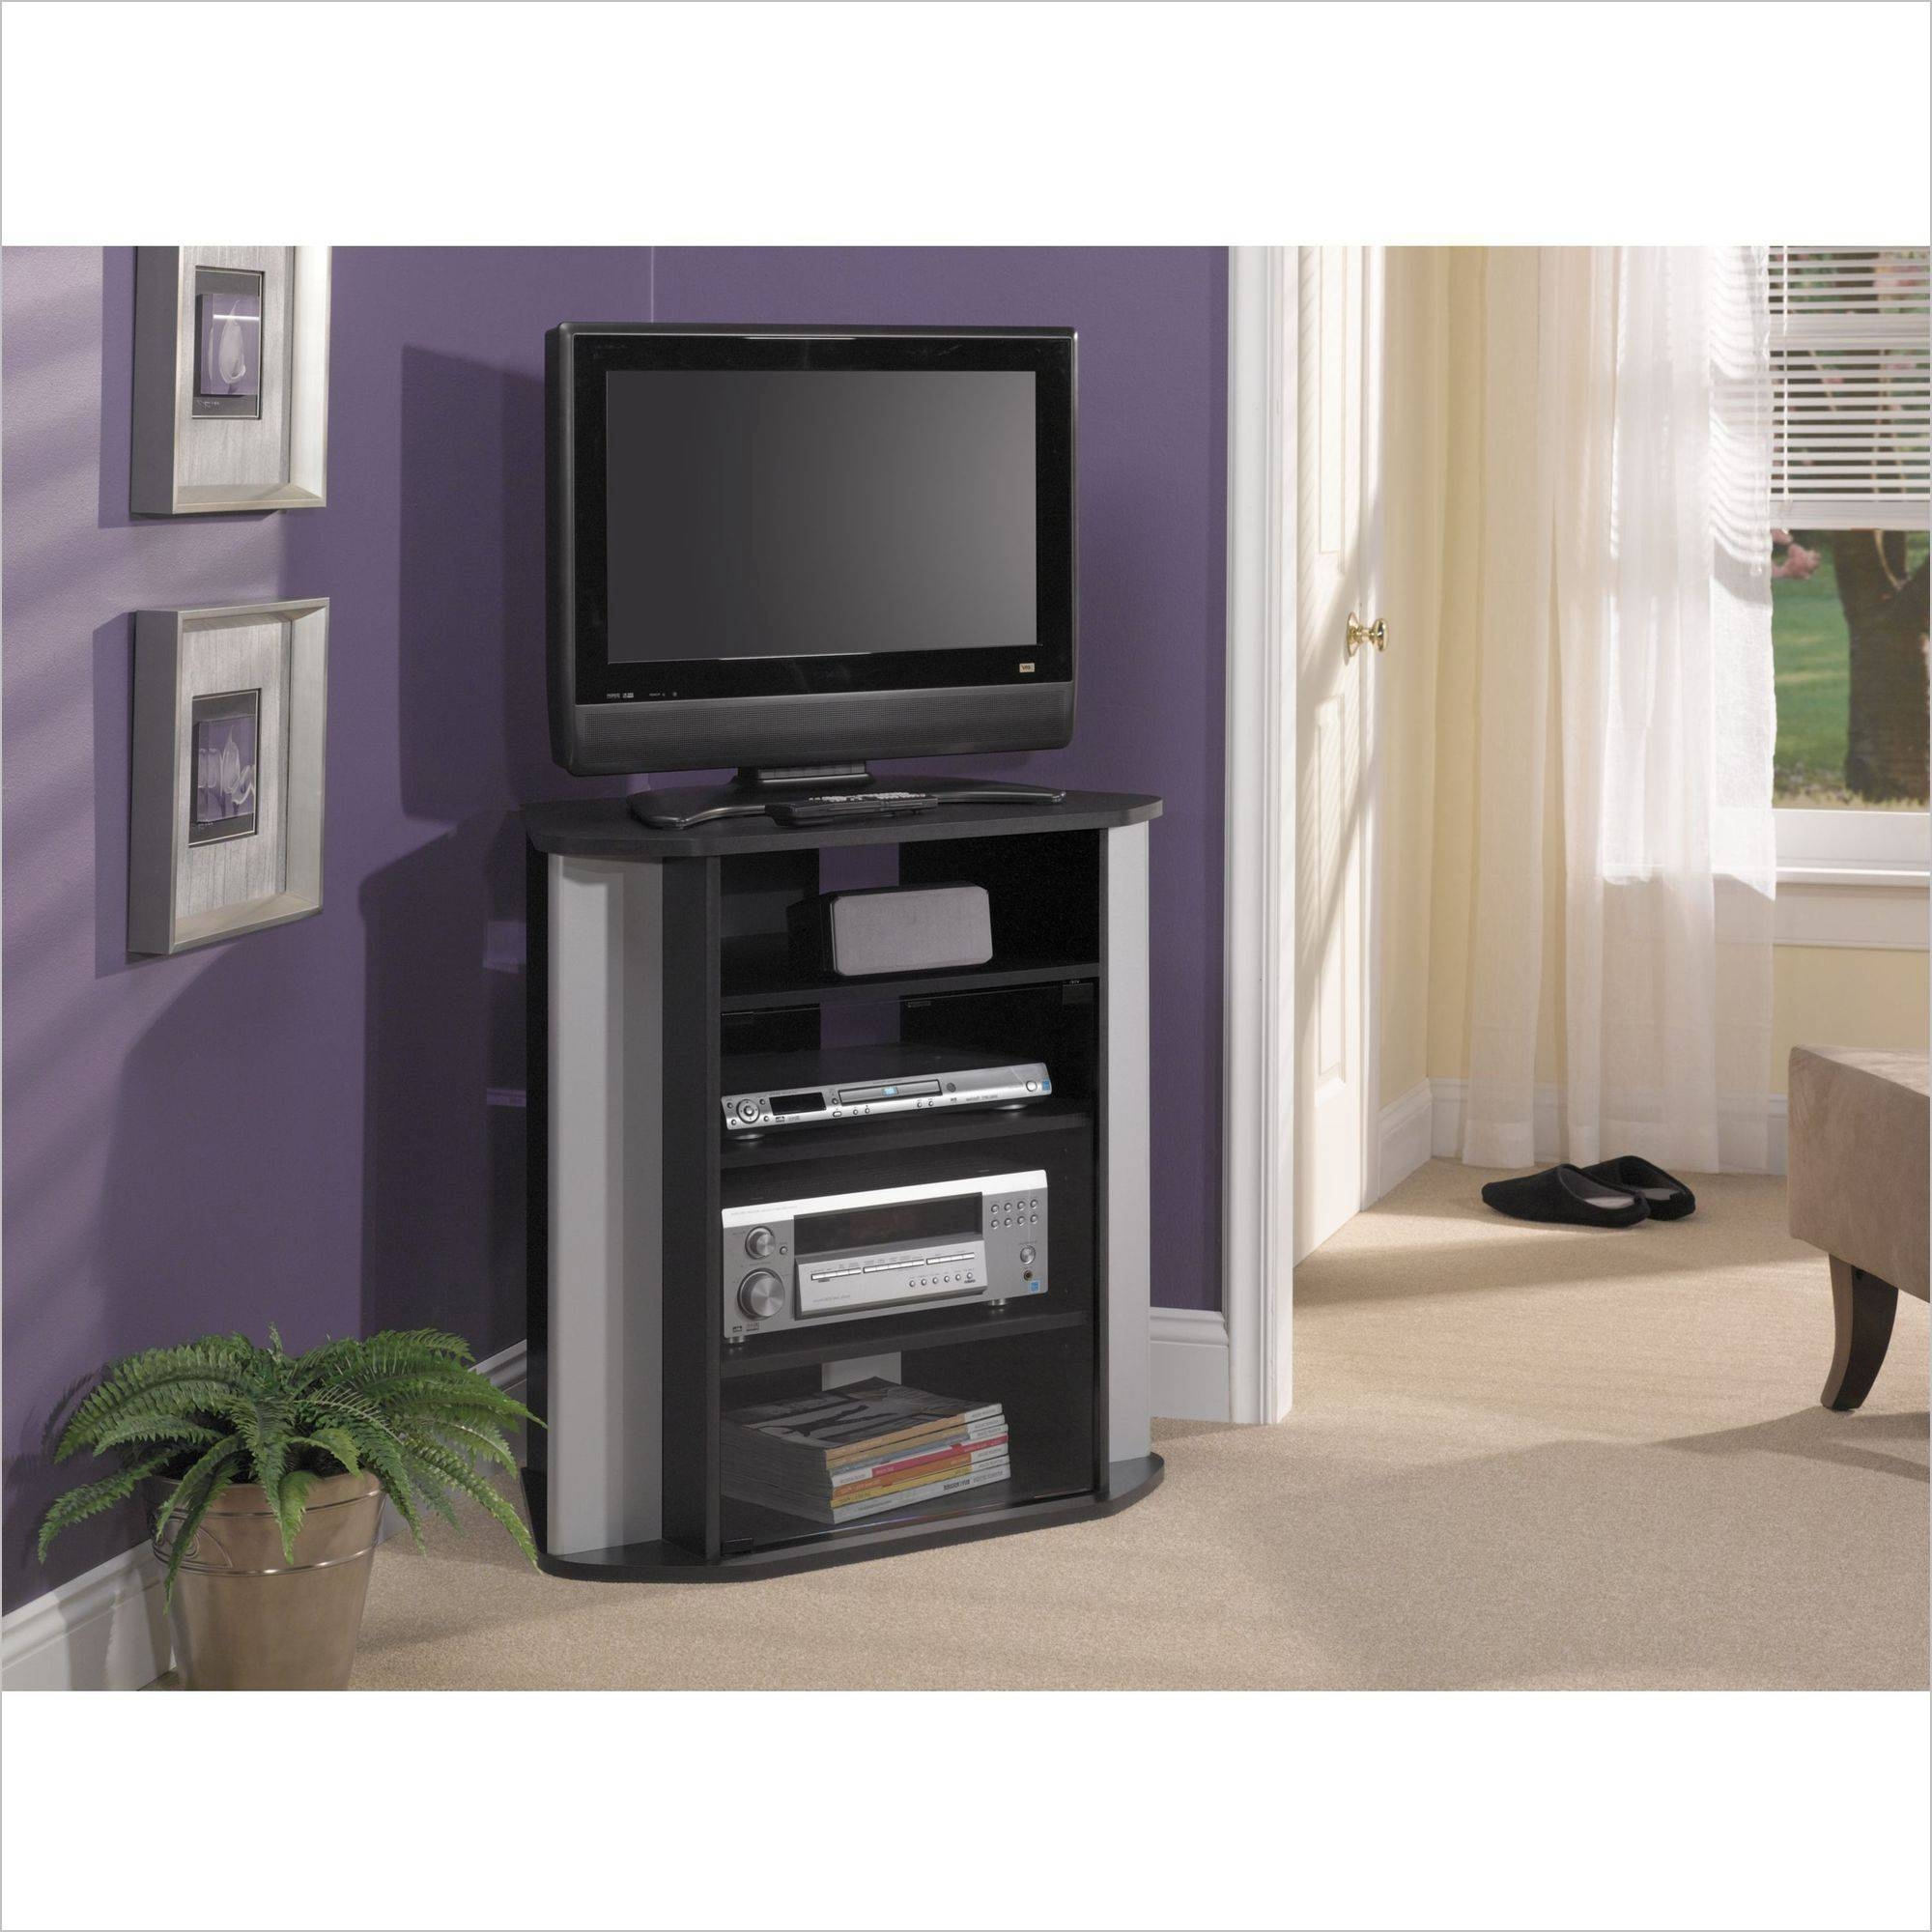 Unique Tv Stands. Buy Modern Tv Stnads Online Uk (View 12 of 15)